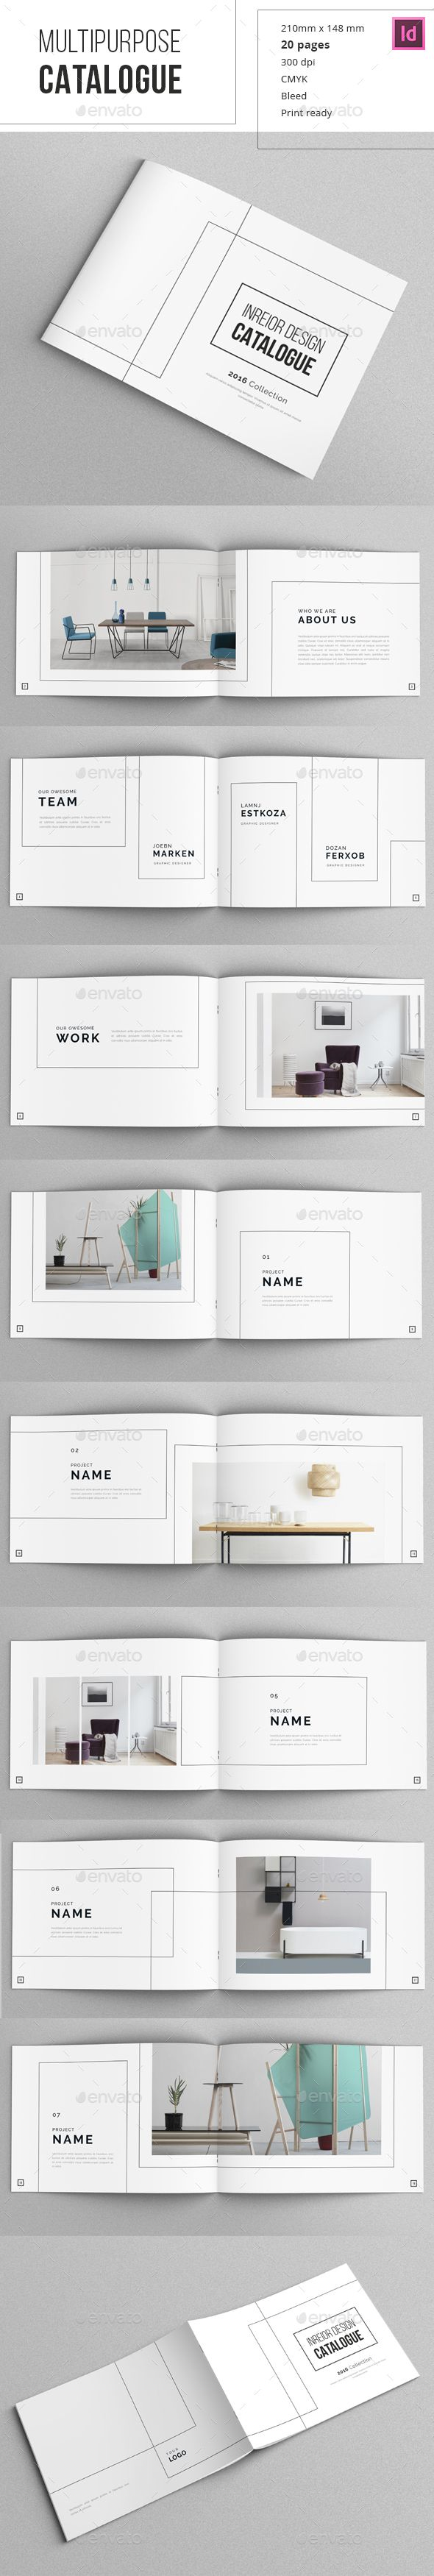 Minimal Indesign Catalogue Template InDesign INDD #Design #Layout #DPS #Typography